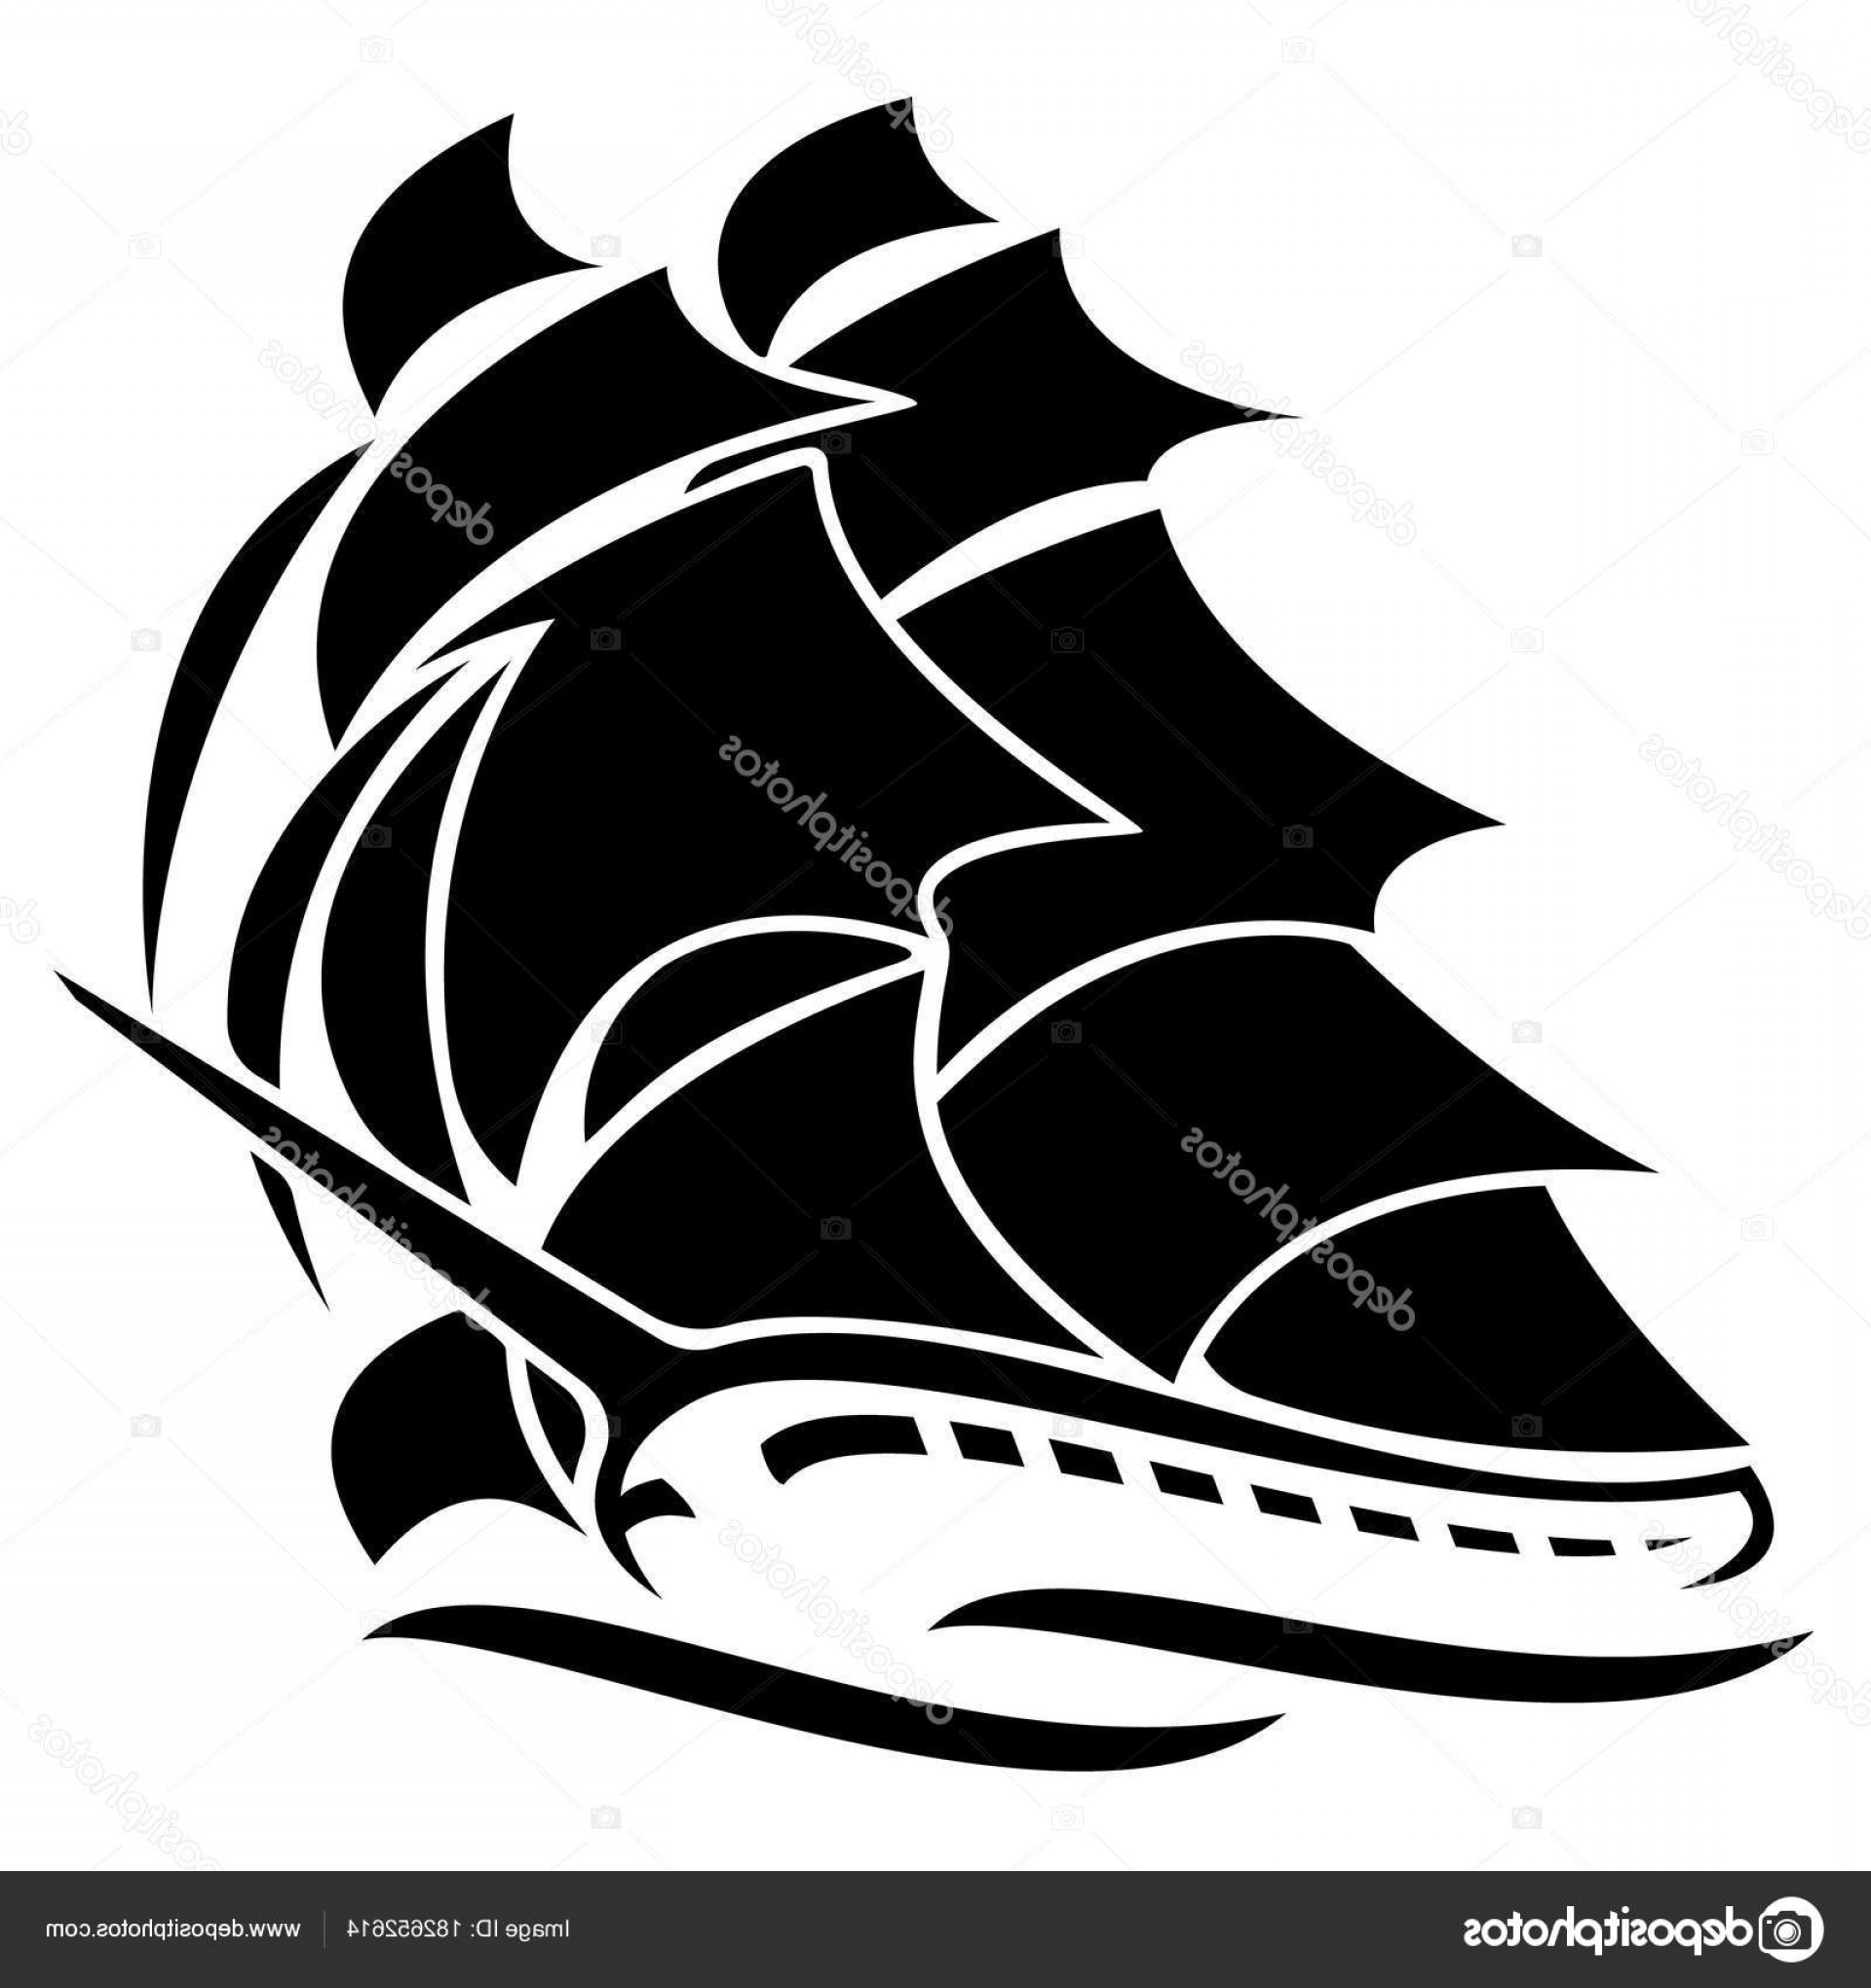 Boat Vector Art Graphics: Stock Illustration Old Tall Sailing Ship Vector